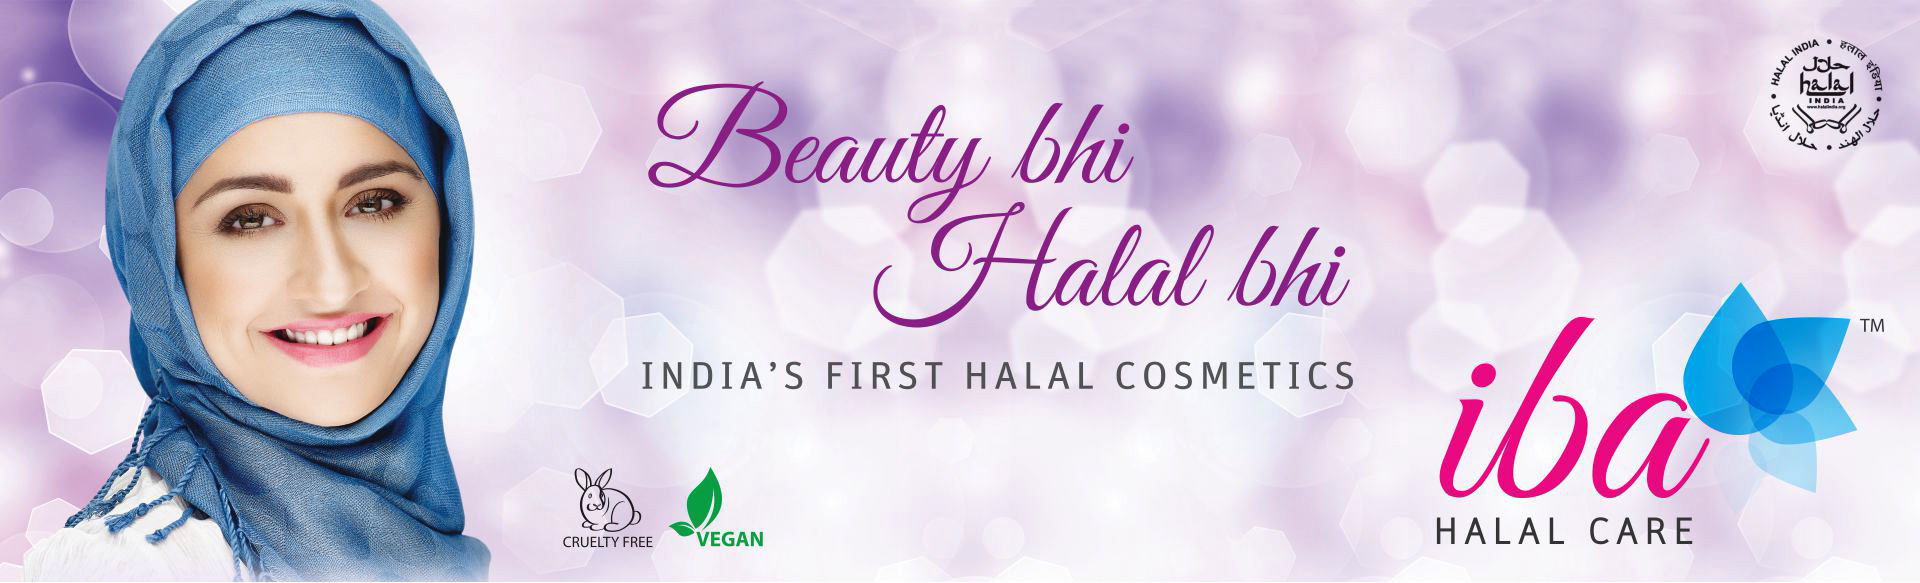 SALON CLEO FOR IBA HALAL CARE COSMETIC PRODUCT RANGE 0315009998